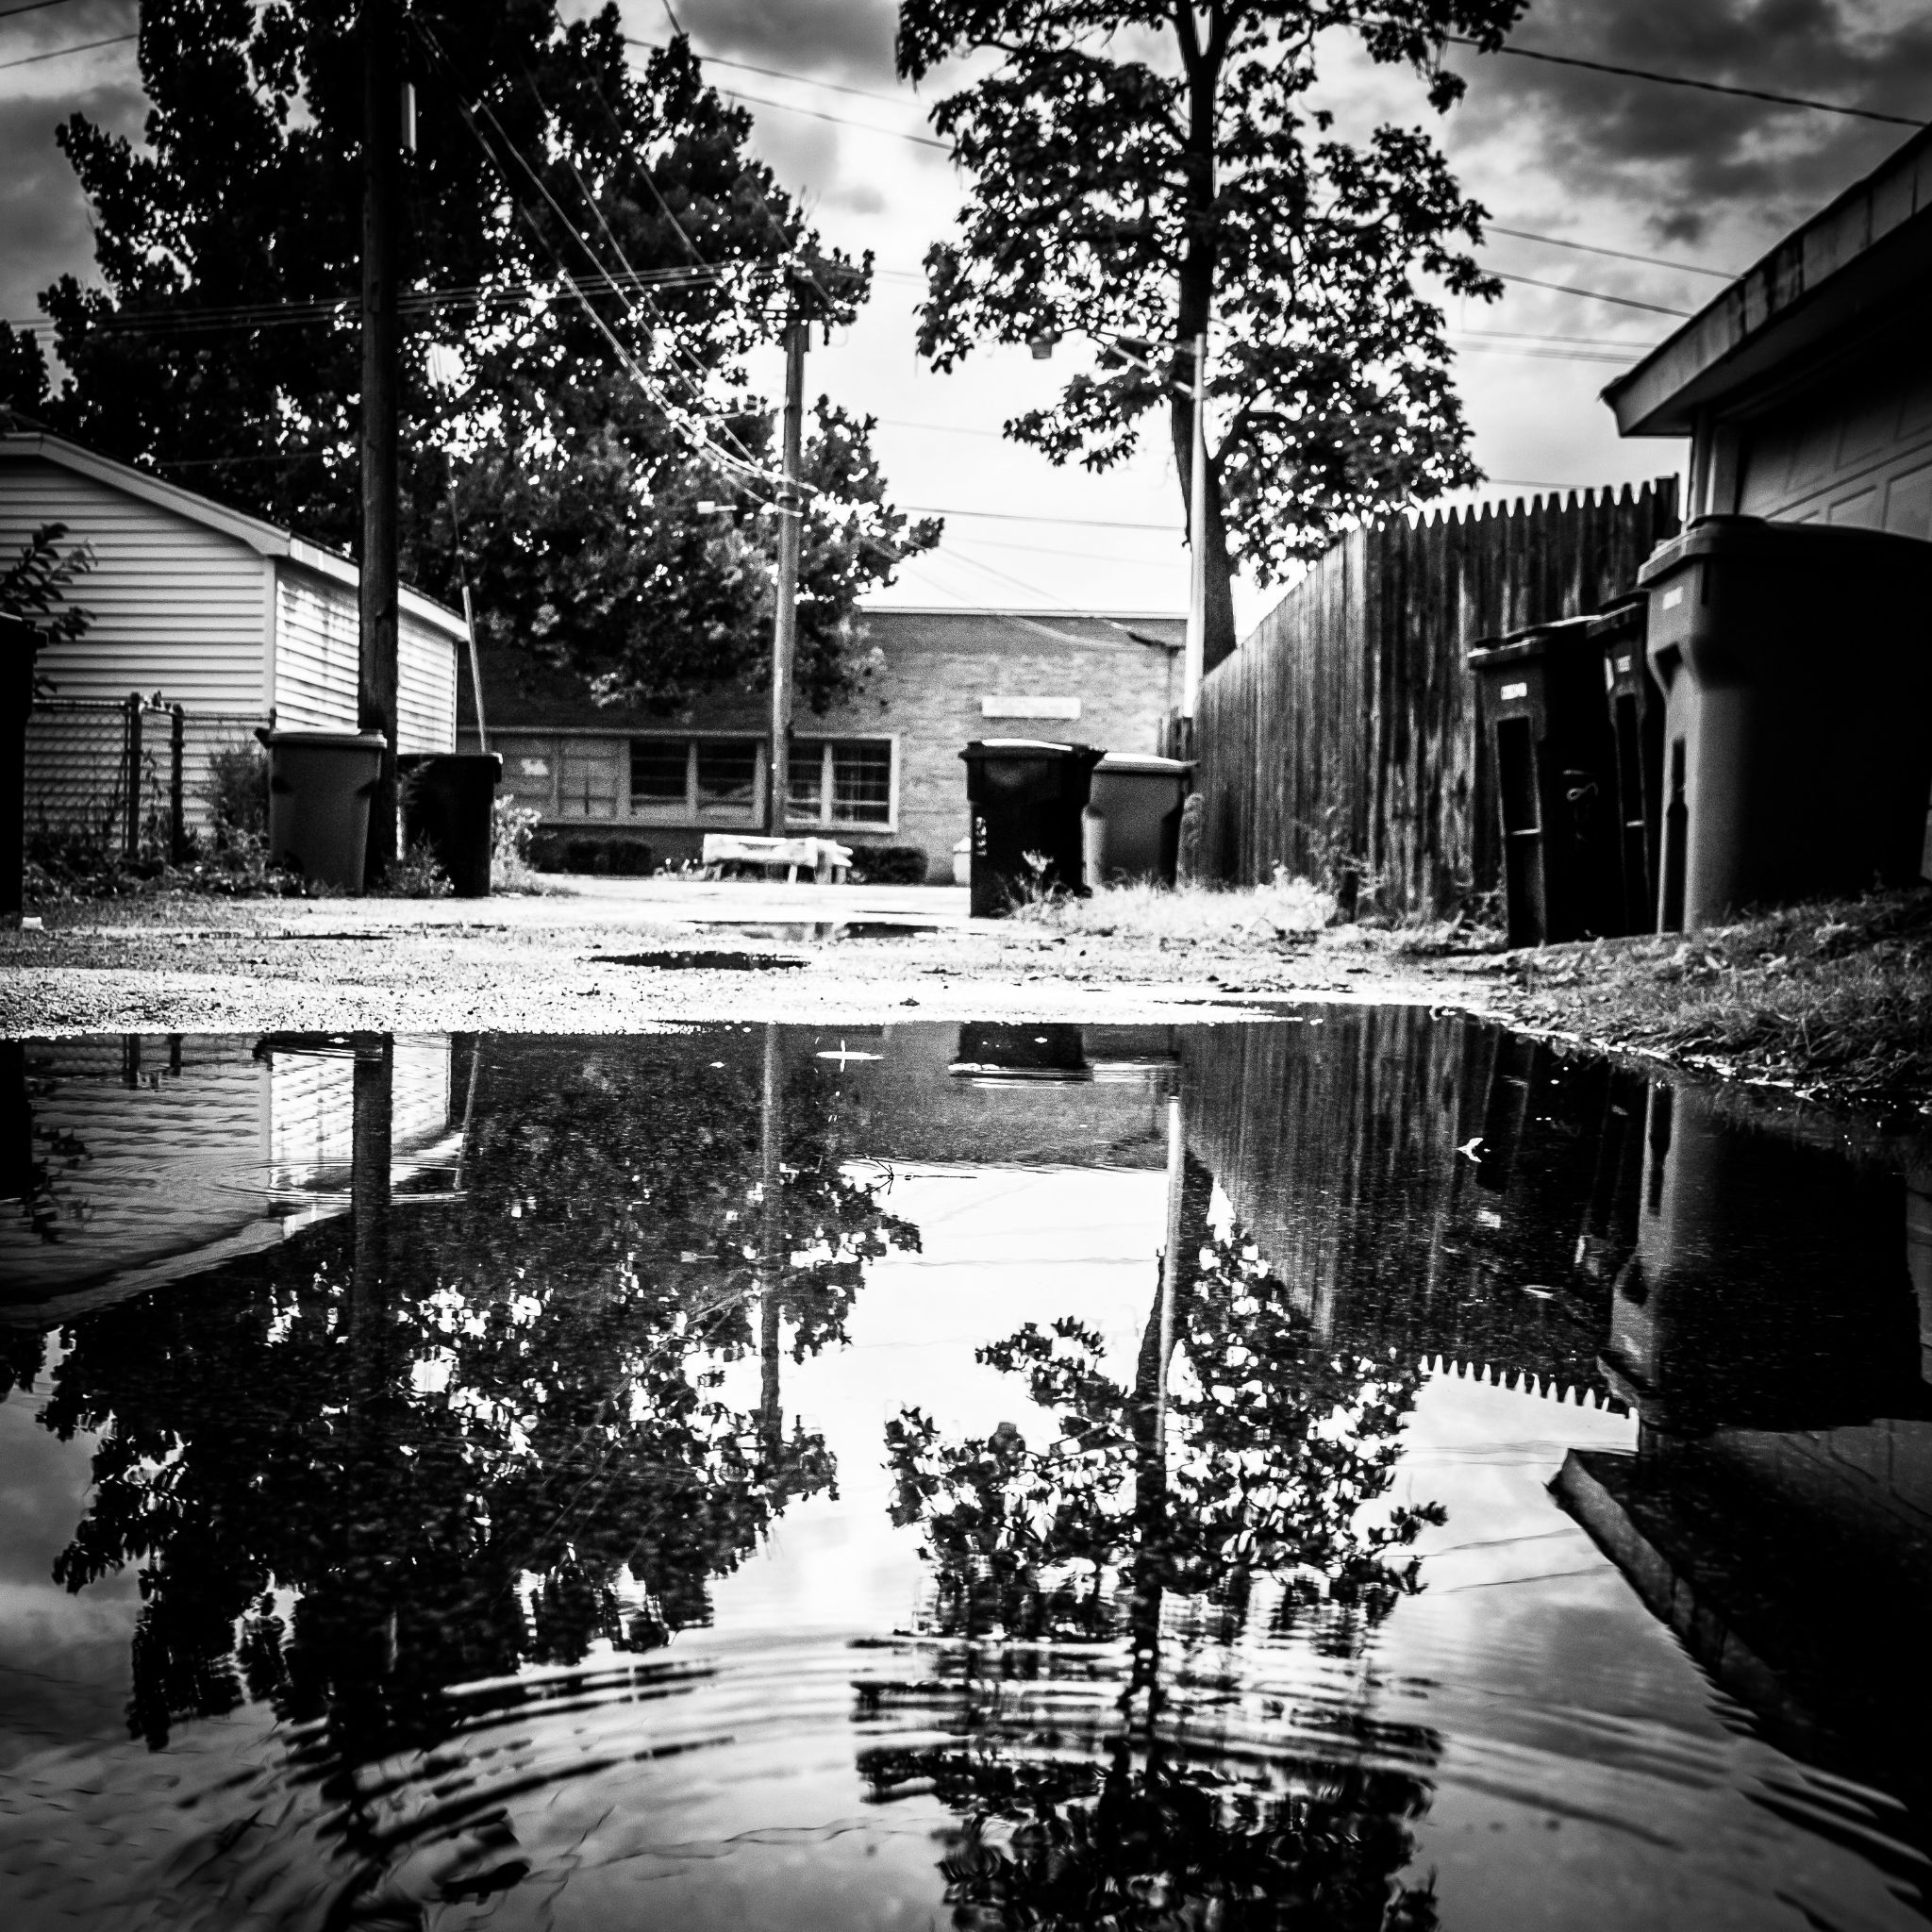 Alleyway Reflections by Andie